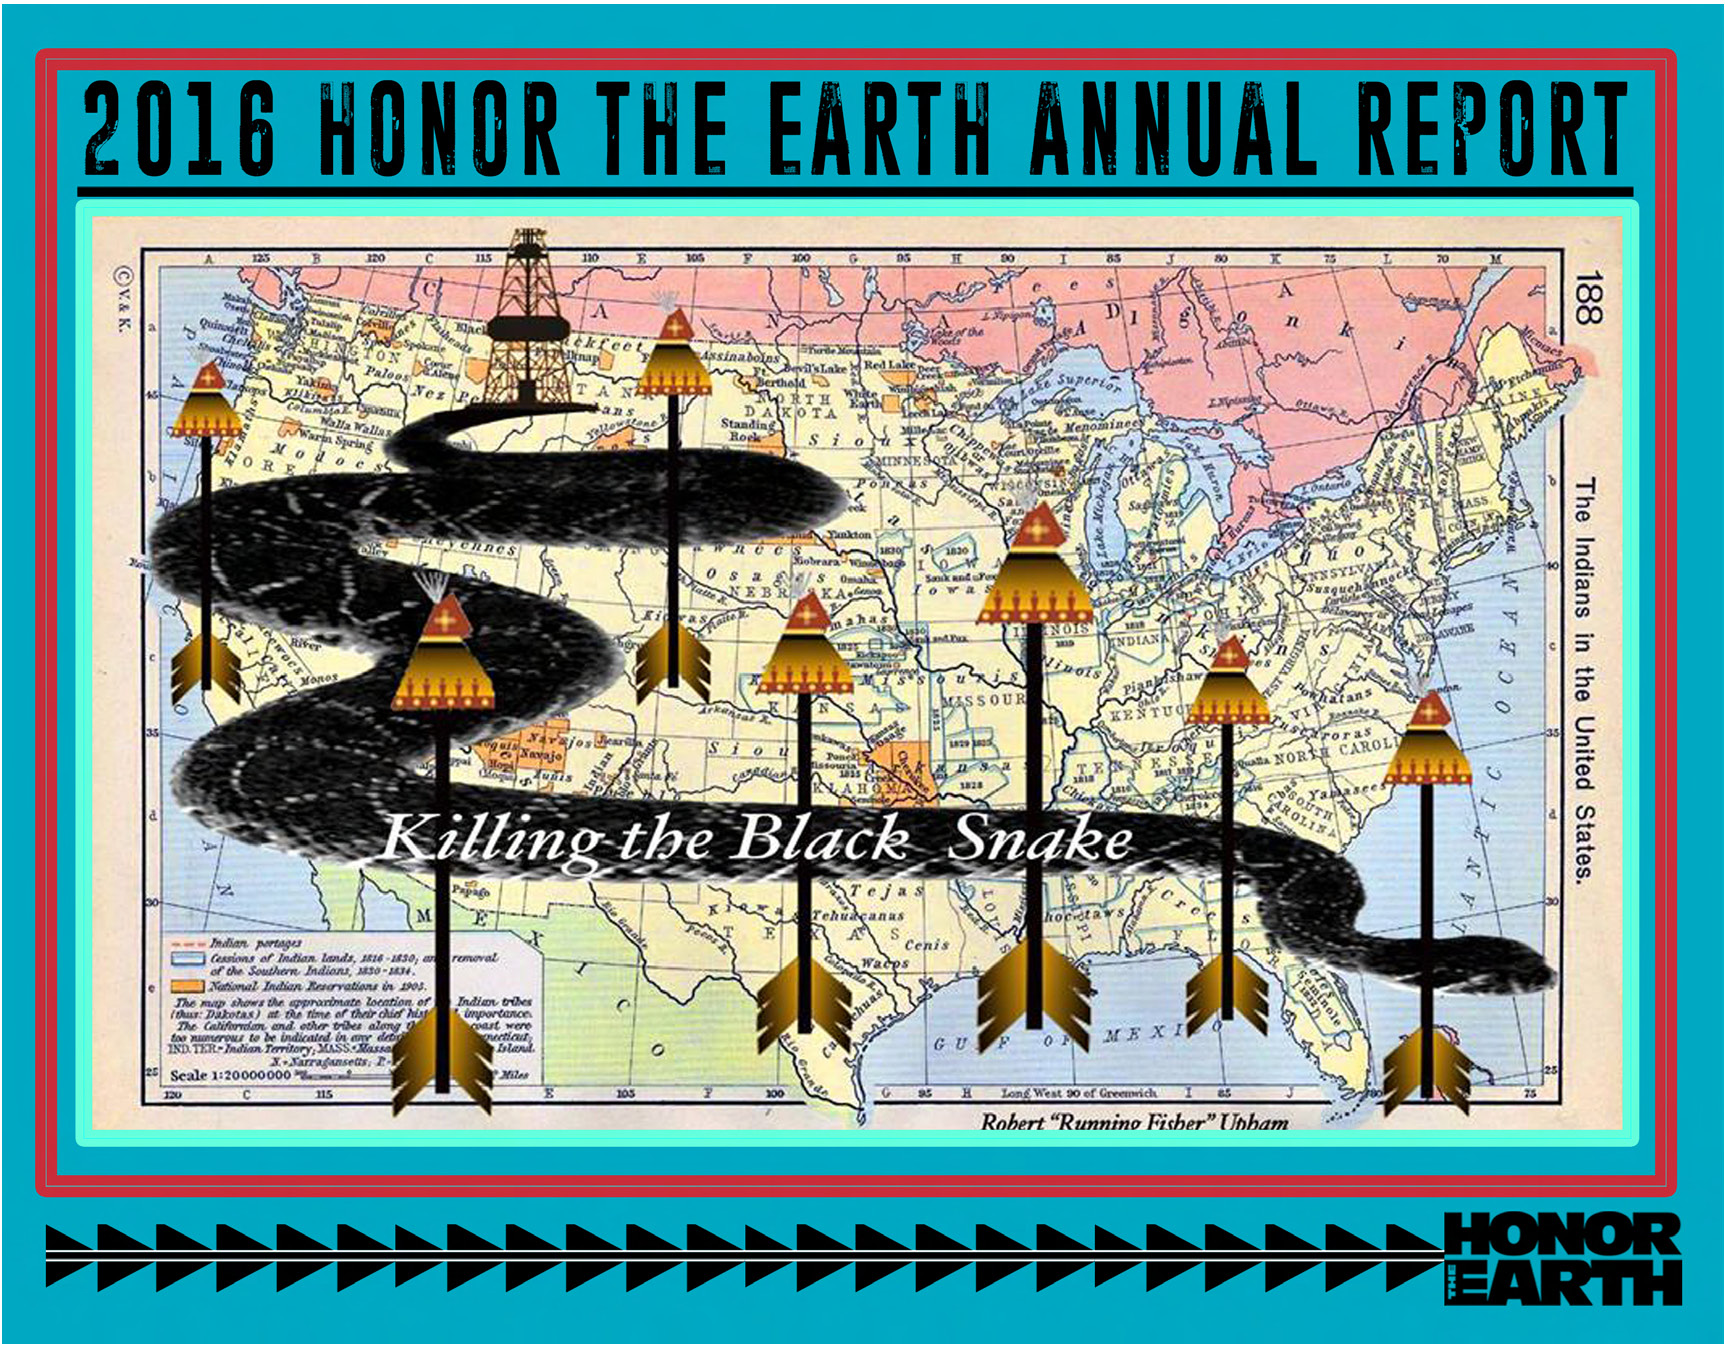 Honor_the_Earth_-_Annual_Report(5)_Page_01.jpg